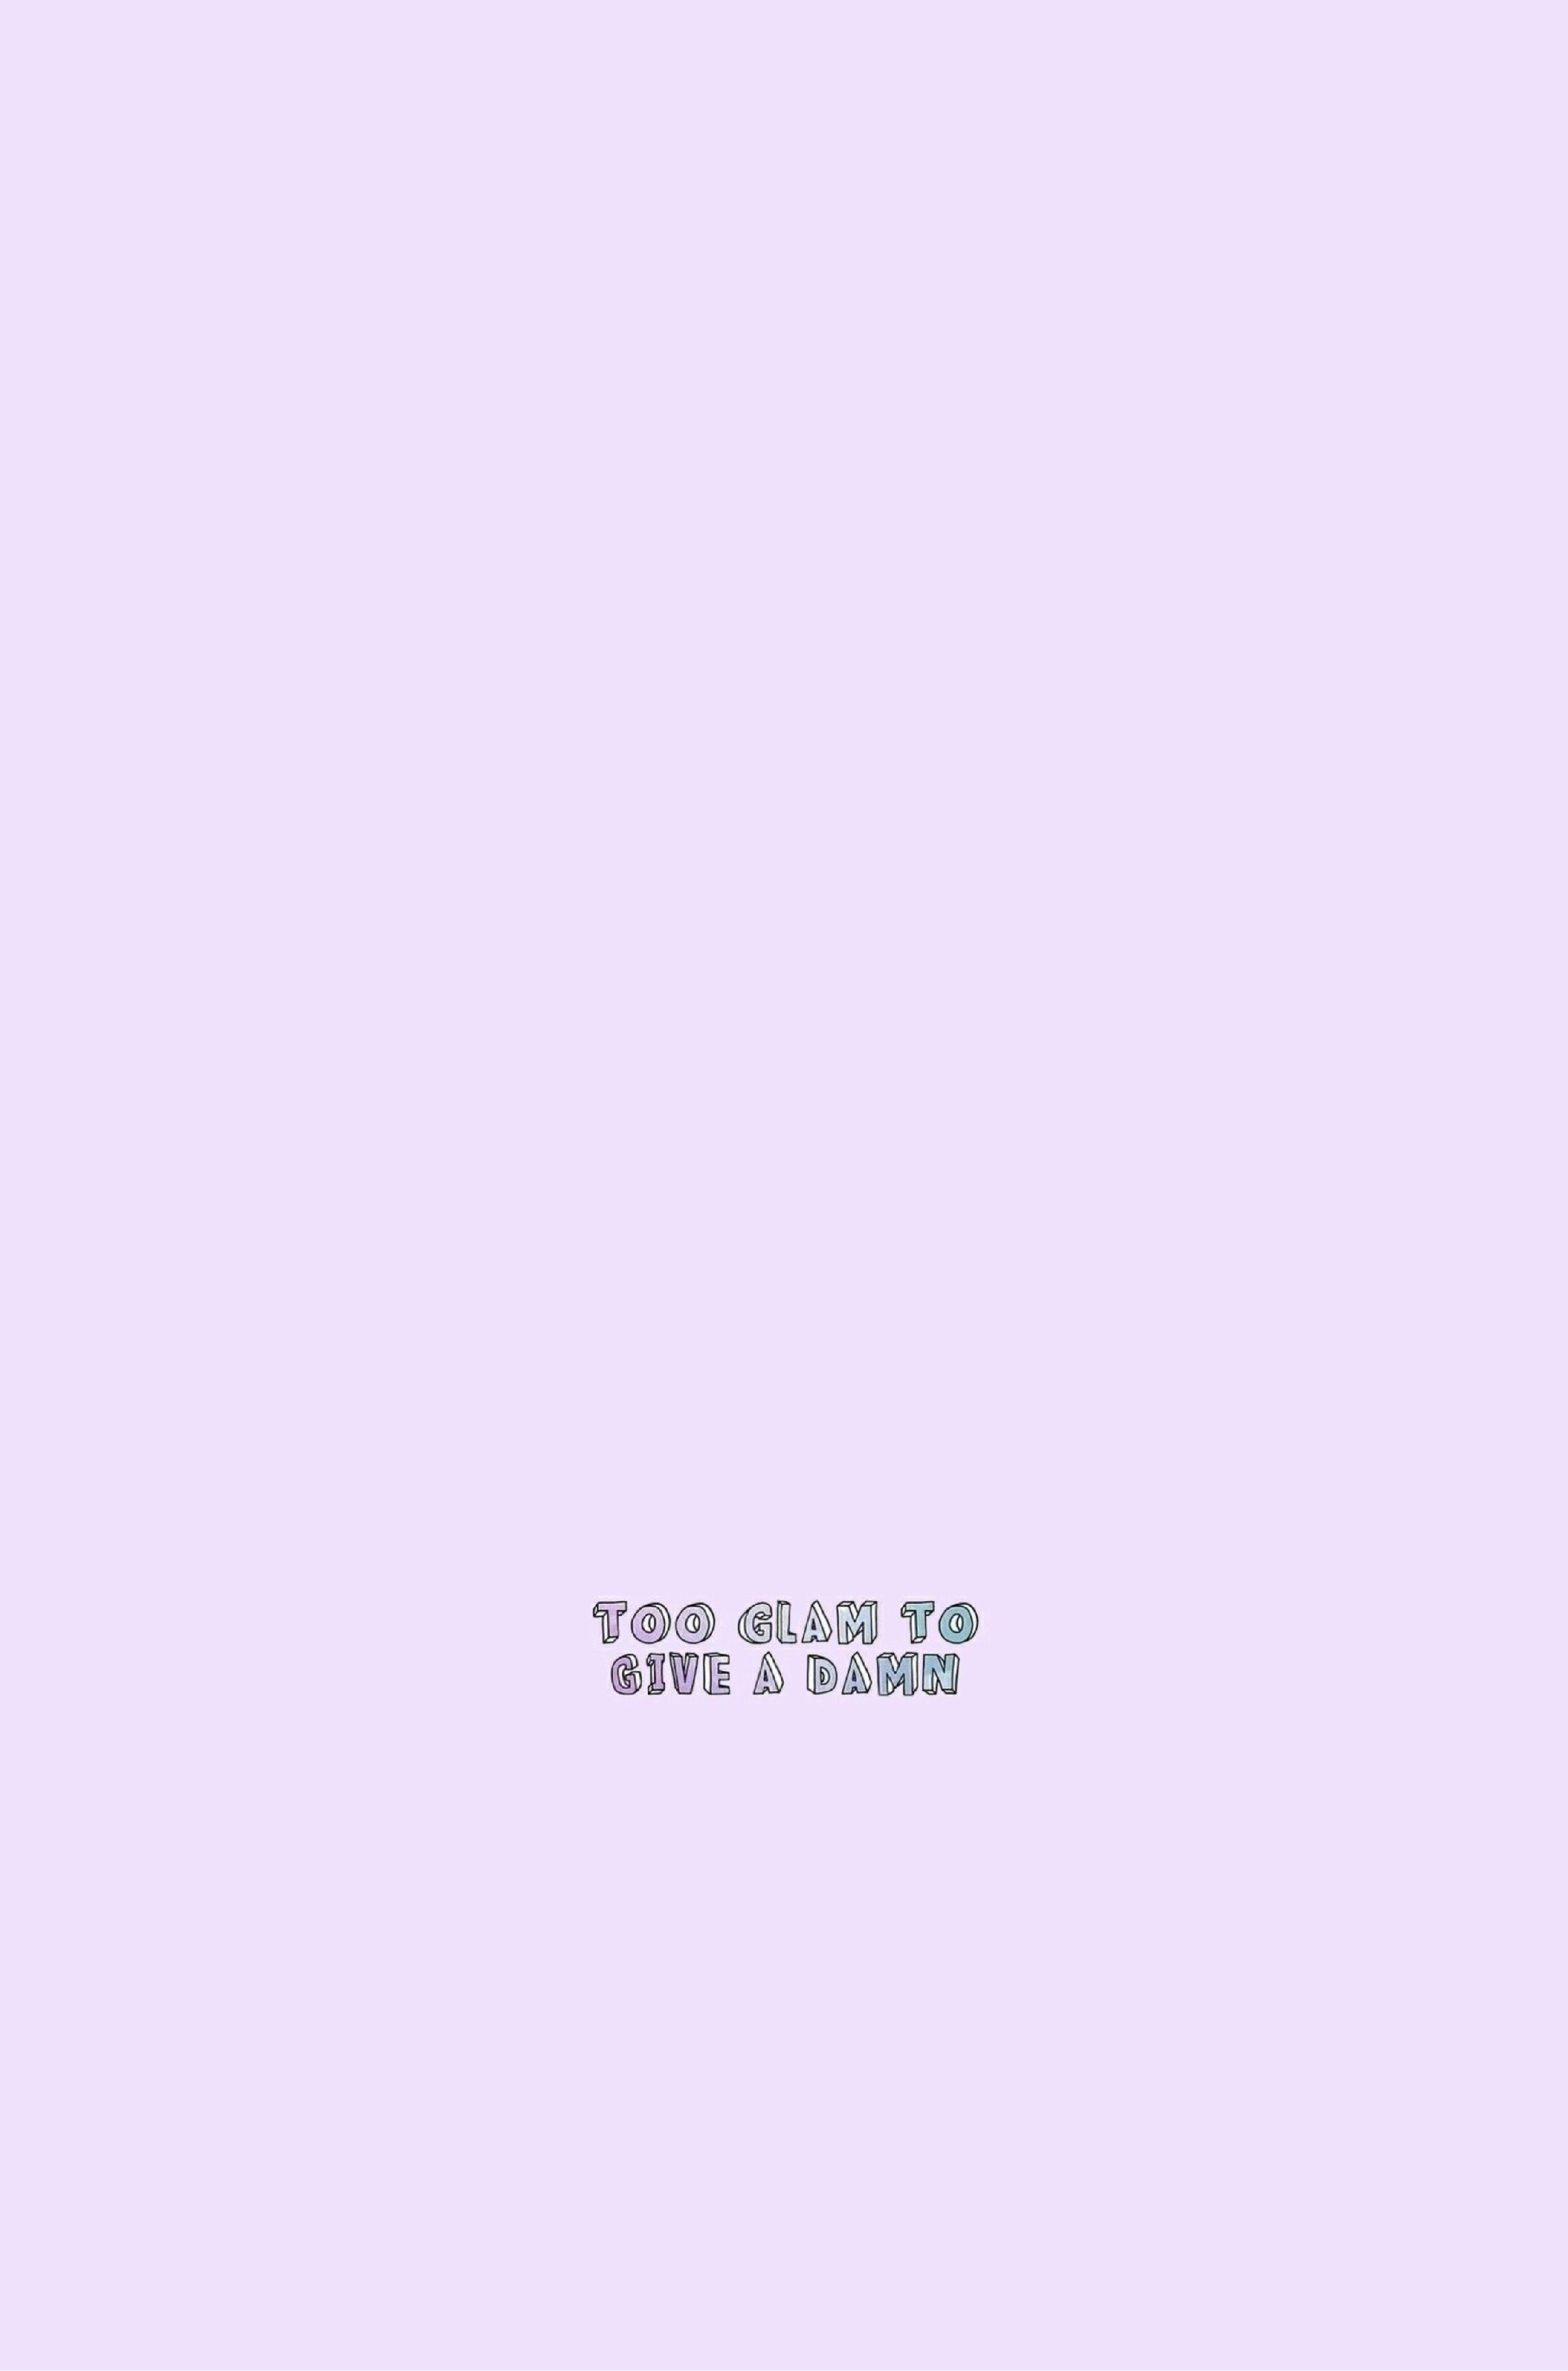 Purple Aesthetic Quotes Wallpapers Top Free Purple Aesthetic Quotes Backgrounds Wallpaperaccess